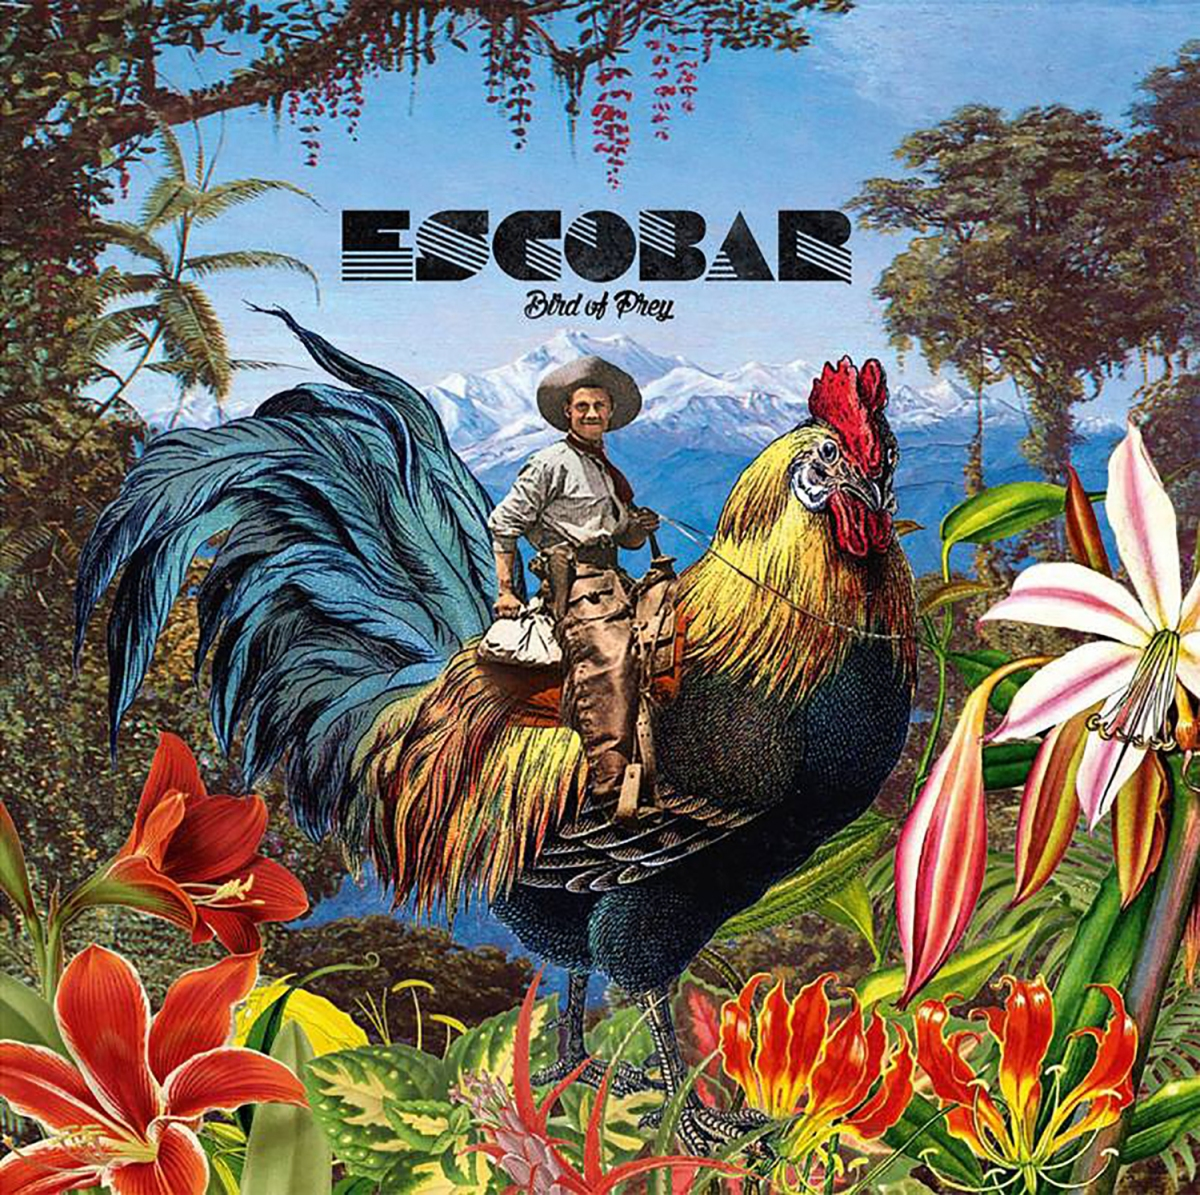 Escobar - Bird of Prey